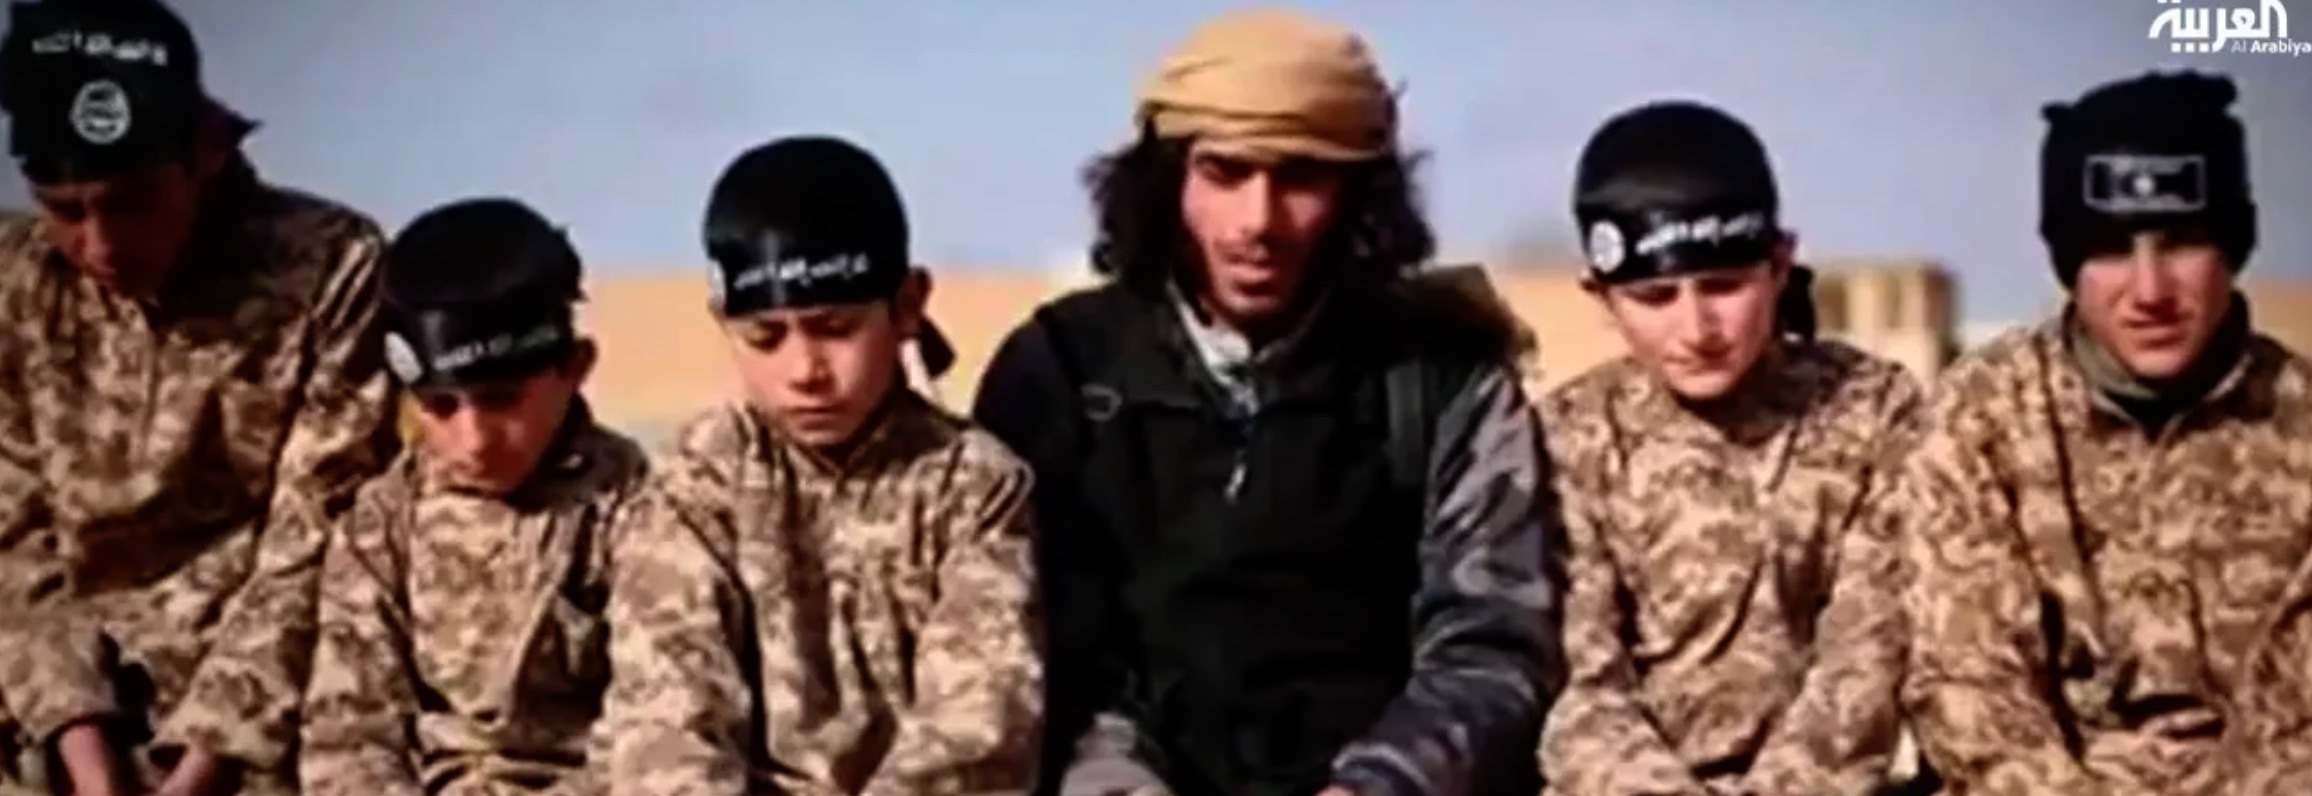 Islamic State Schooled Children As Soldiers – How Can Their 'education' Be Undone?